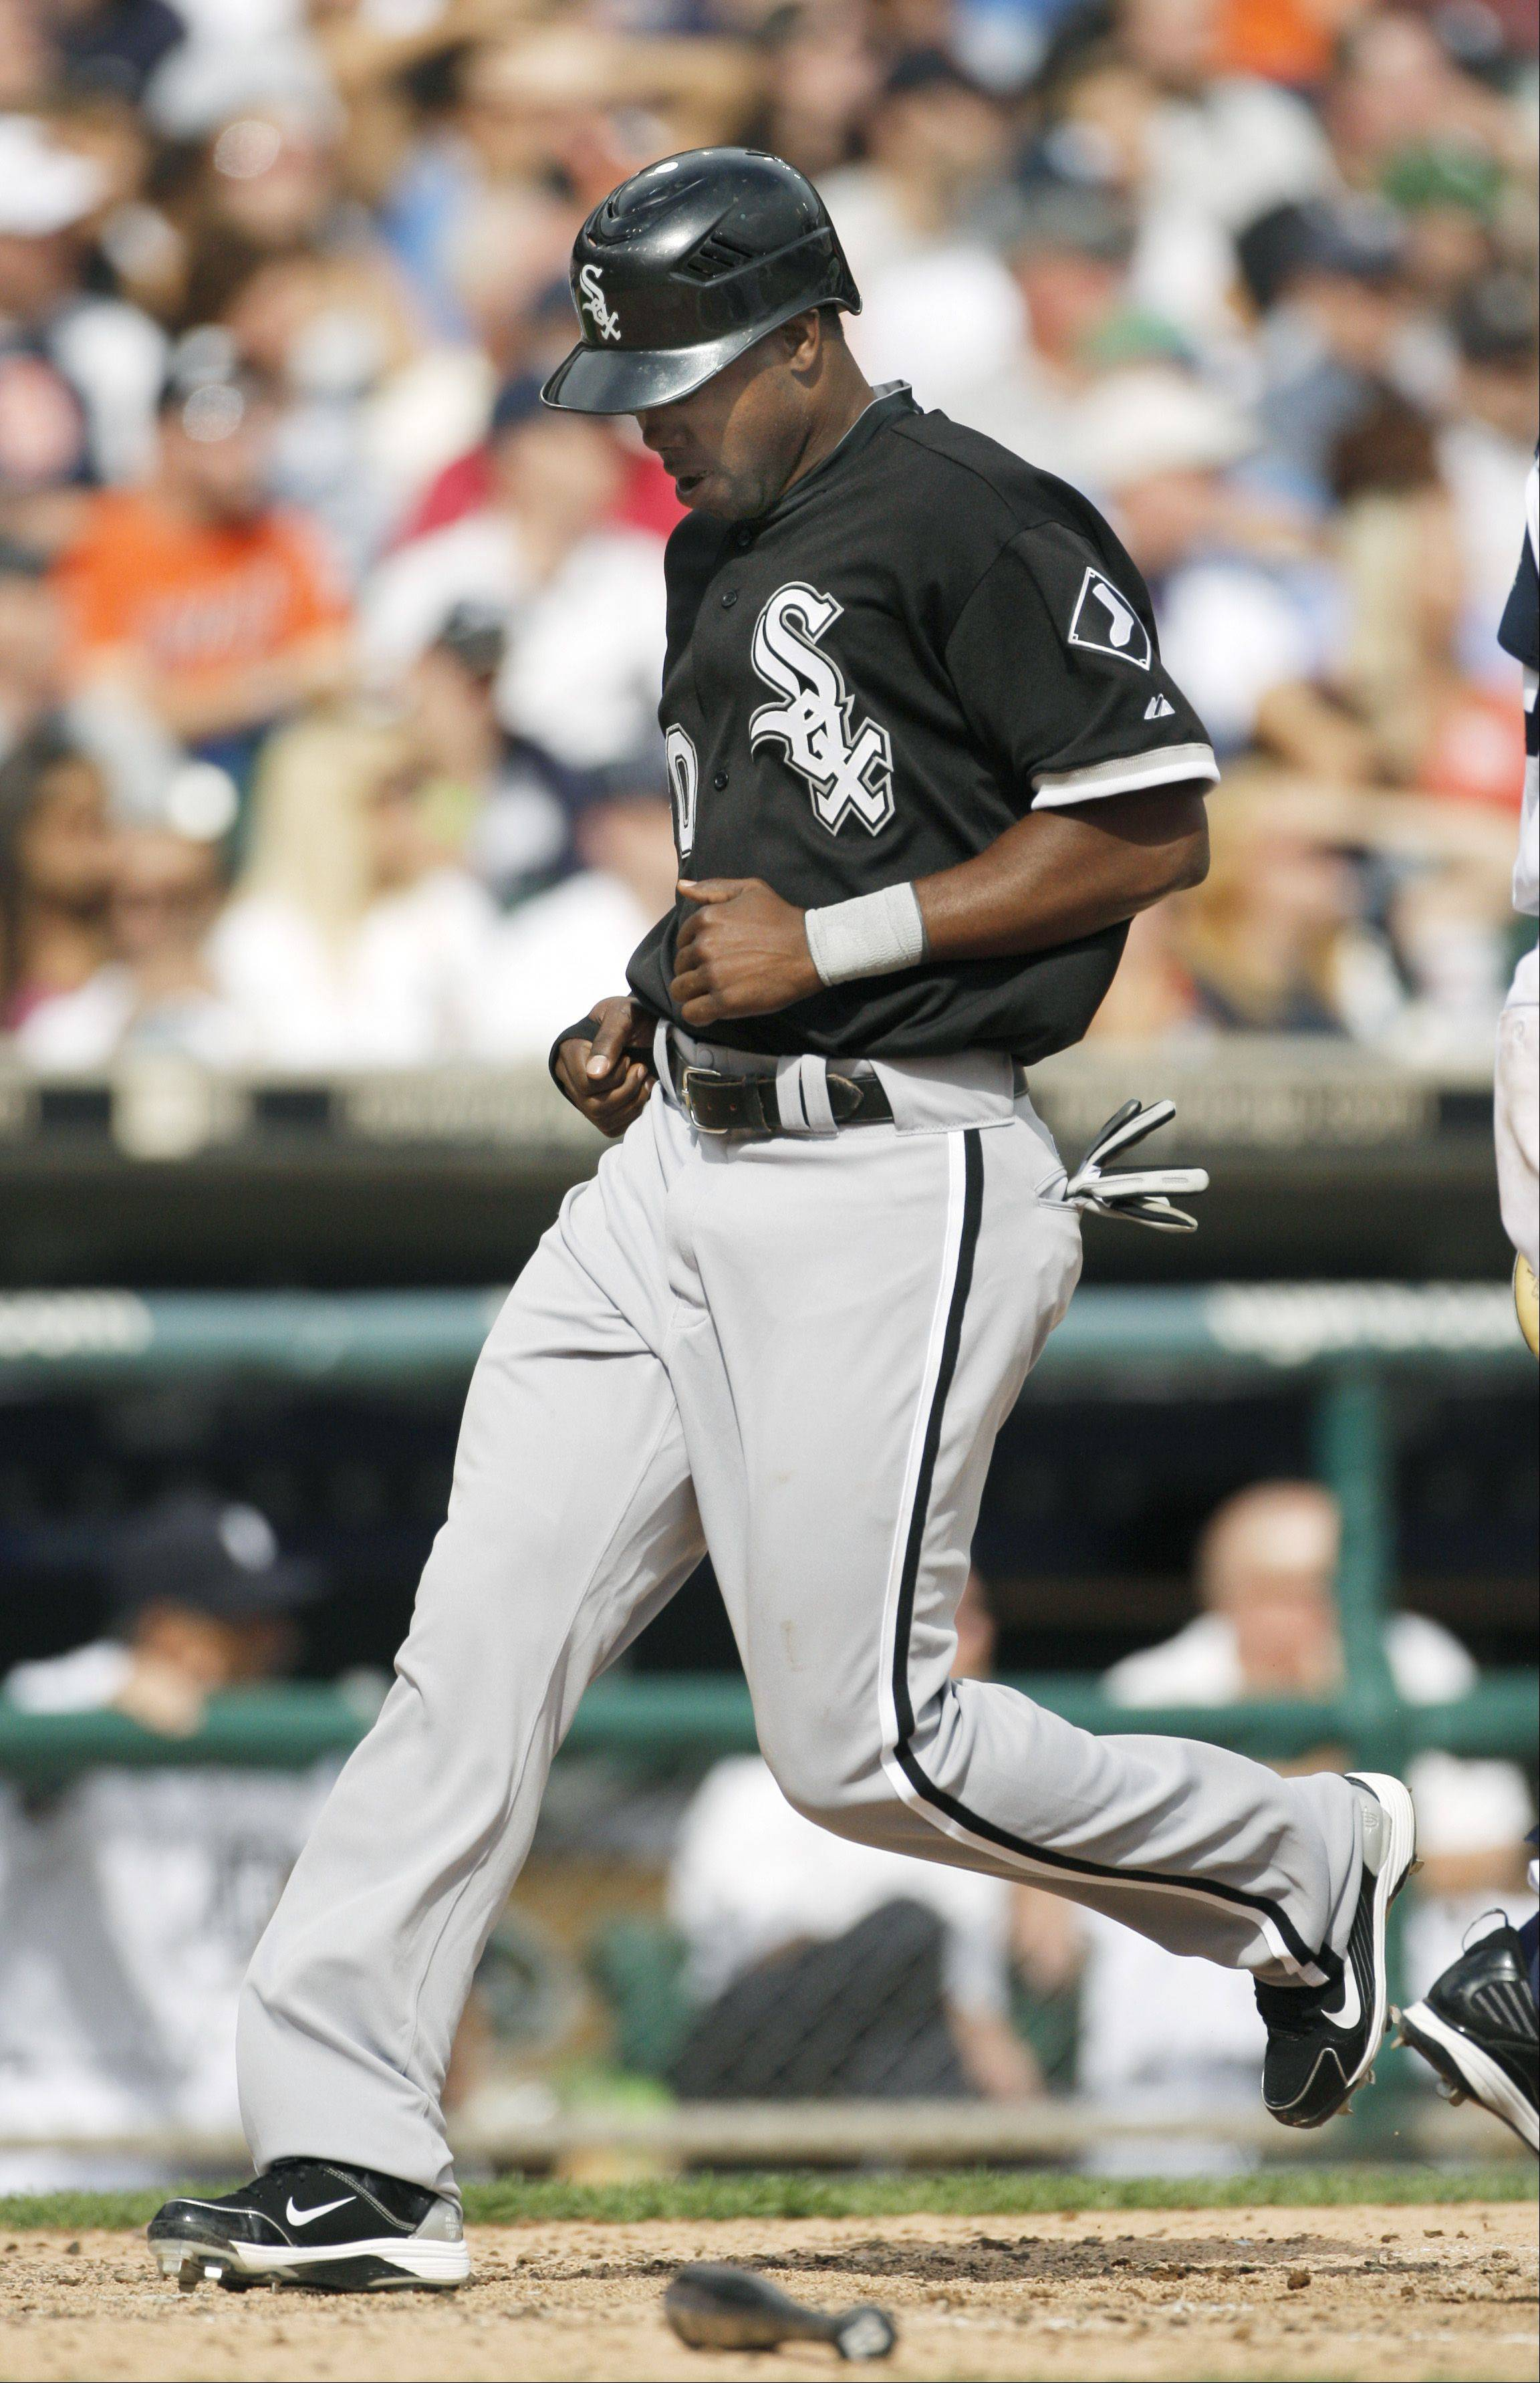 Chicago White Sox's Alejandro De Aza, pinch running for Manny Ramirez, scores the go-ahead run from third base on a single by A.J. Pierzynski in the 10th inning of a baseball game against the Detroit Tigers Monday, Sept. 6, 2010 in Detroit. The White Sox defeated the Tigers 5-4 in 10 innings. (AP Photo/Duane Burleson)